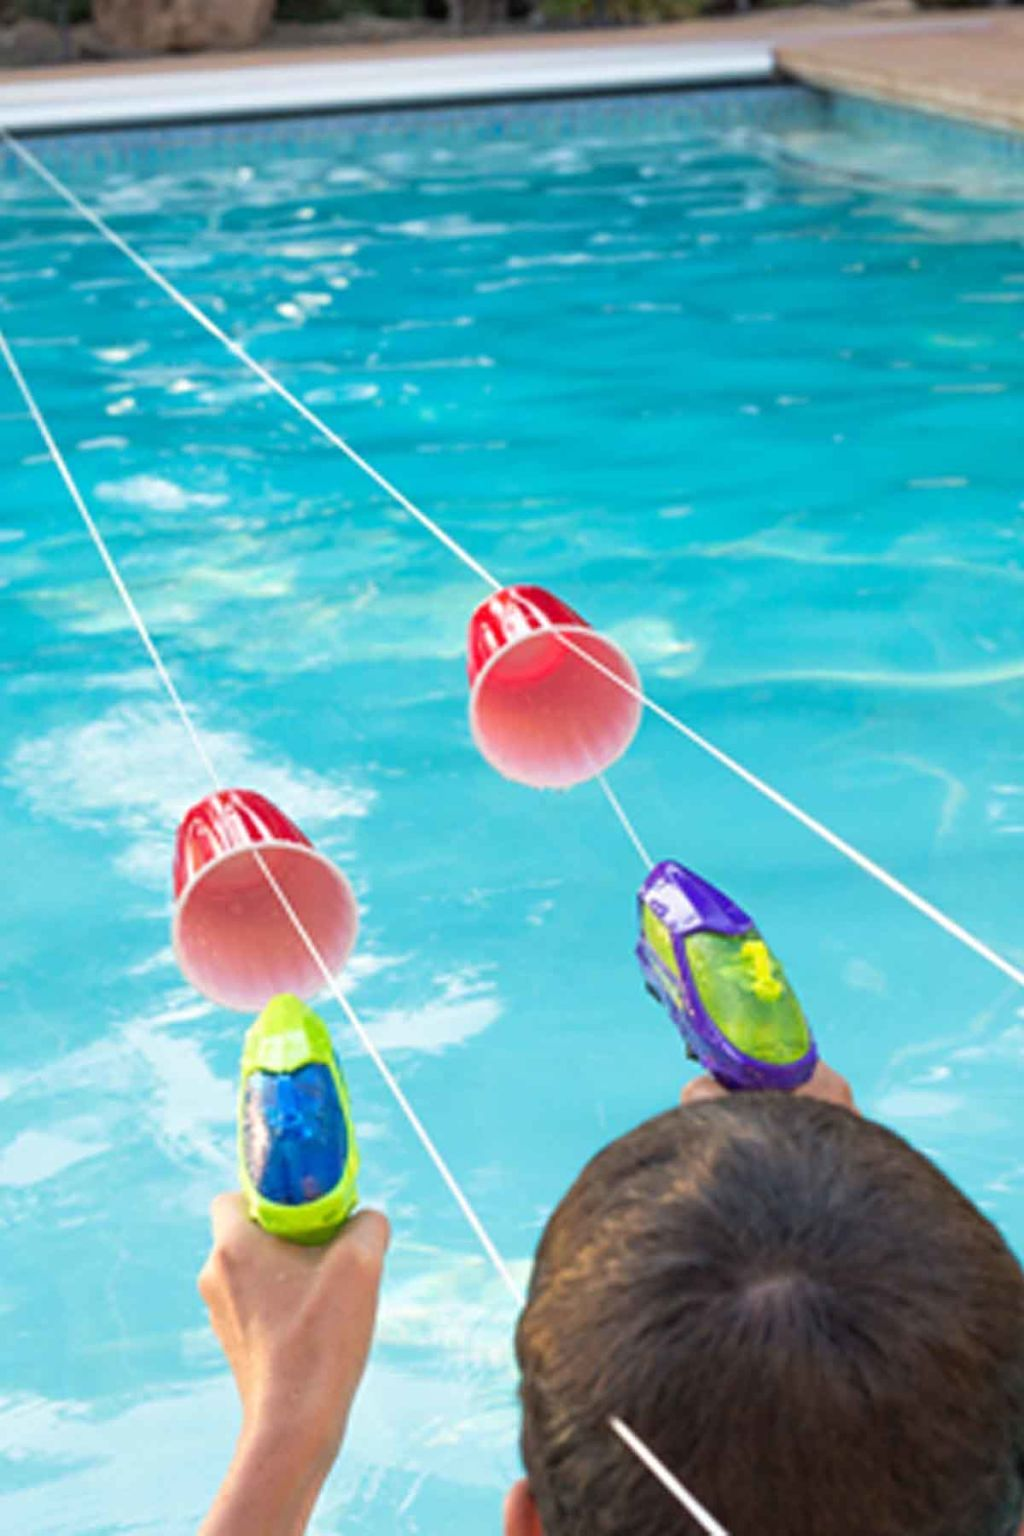 Zwembad Voor Kinder 15 Fun Swimming Pool Games For You And Your Family Ideas For